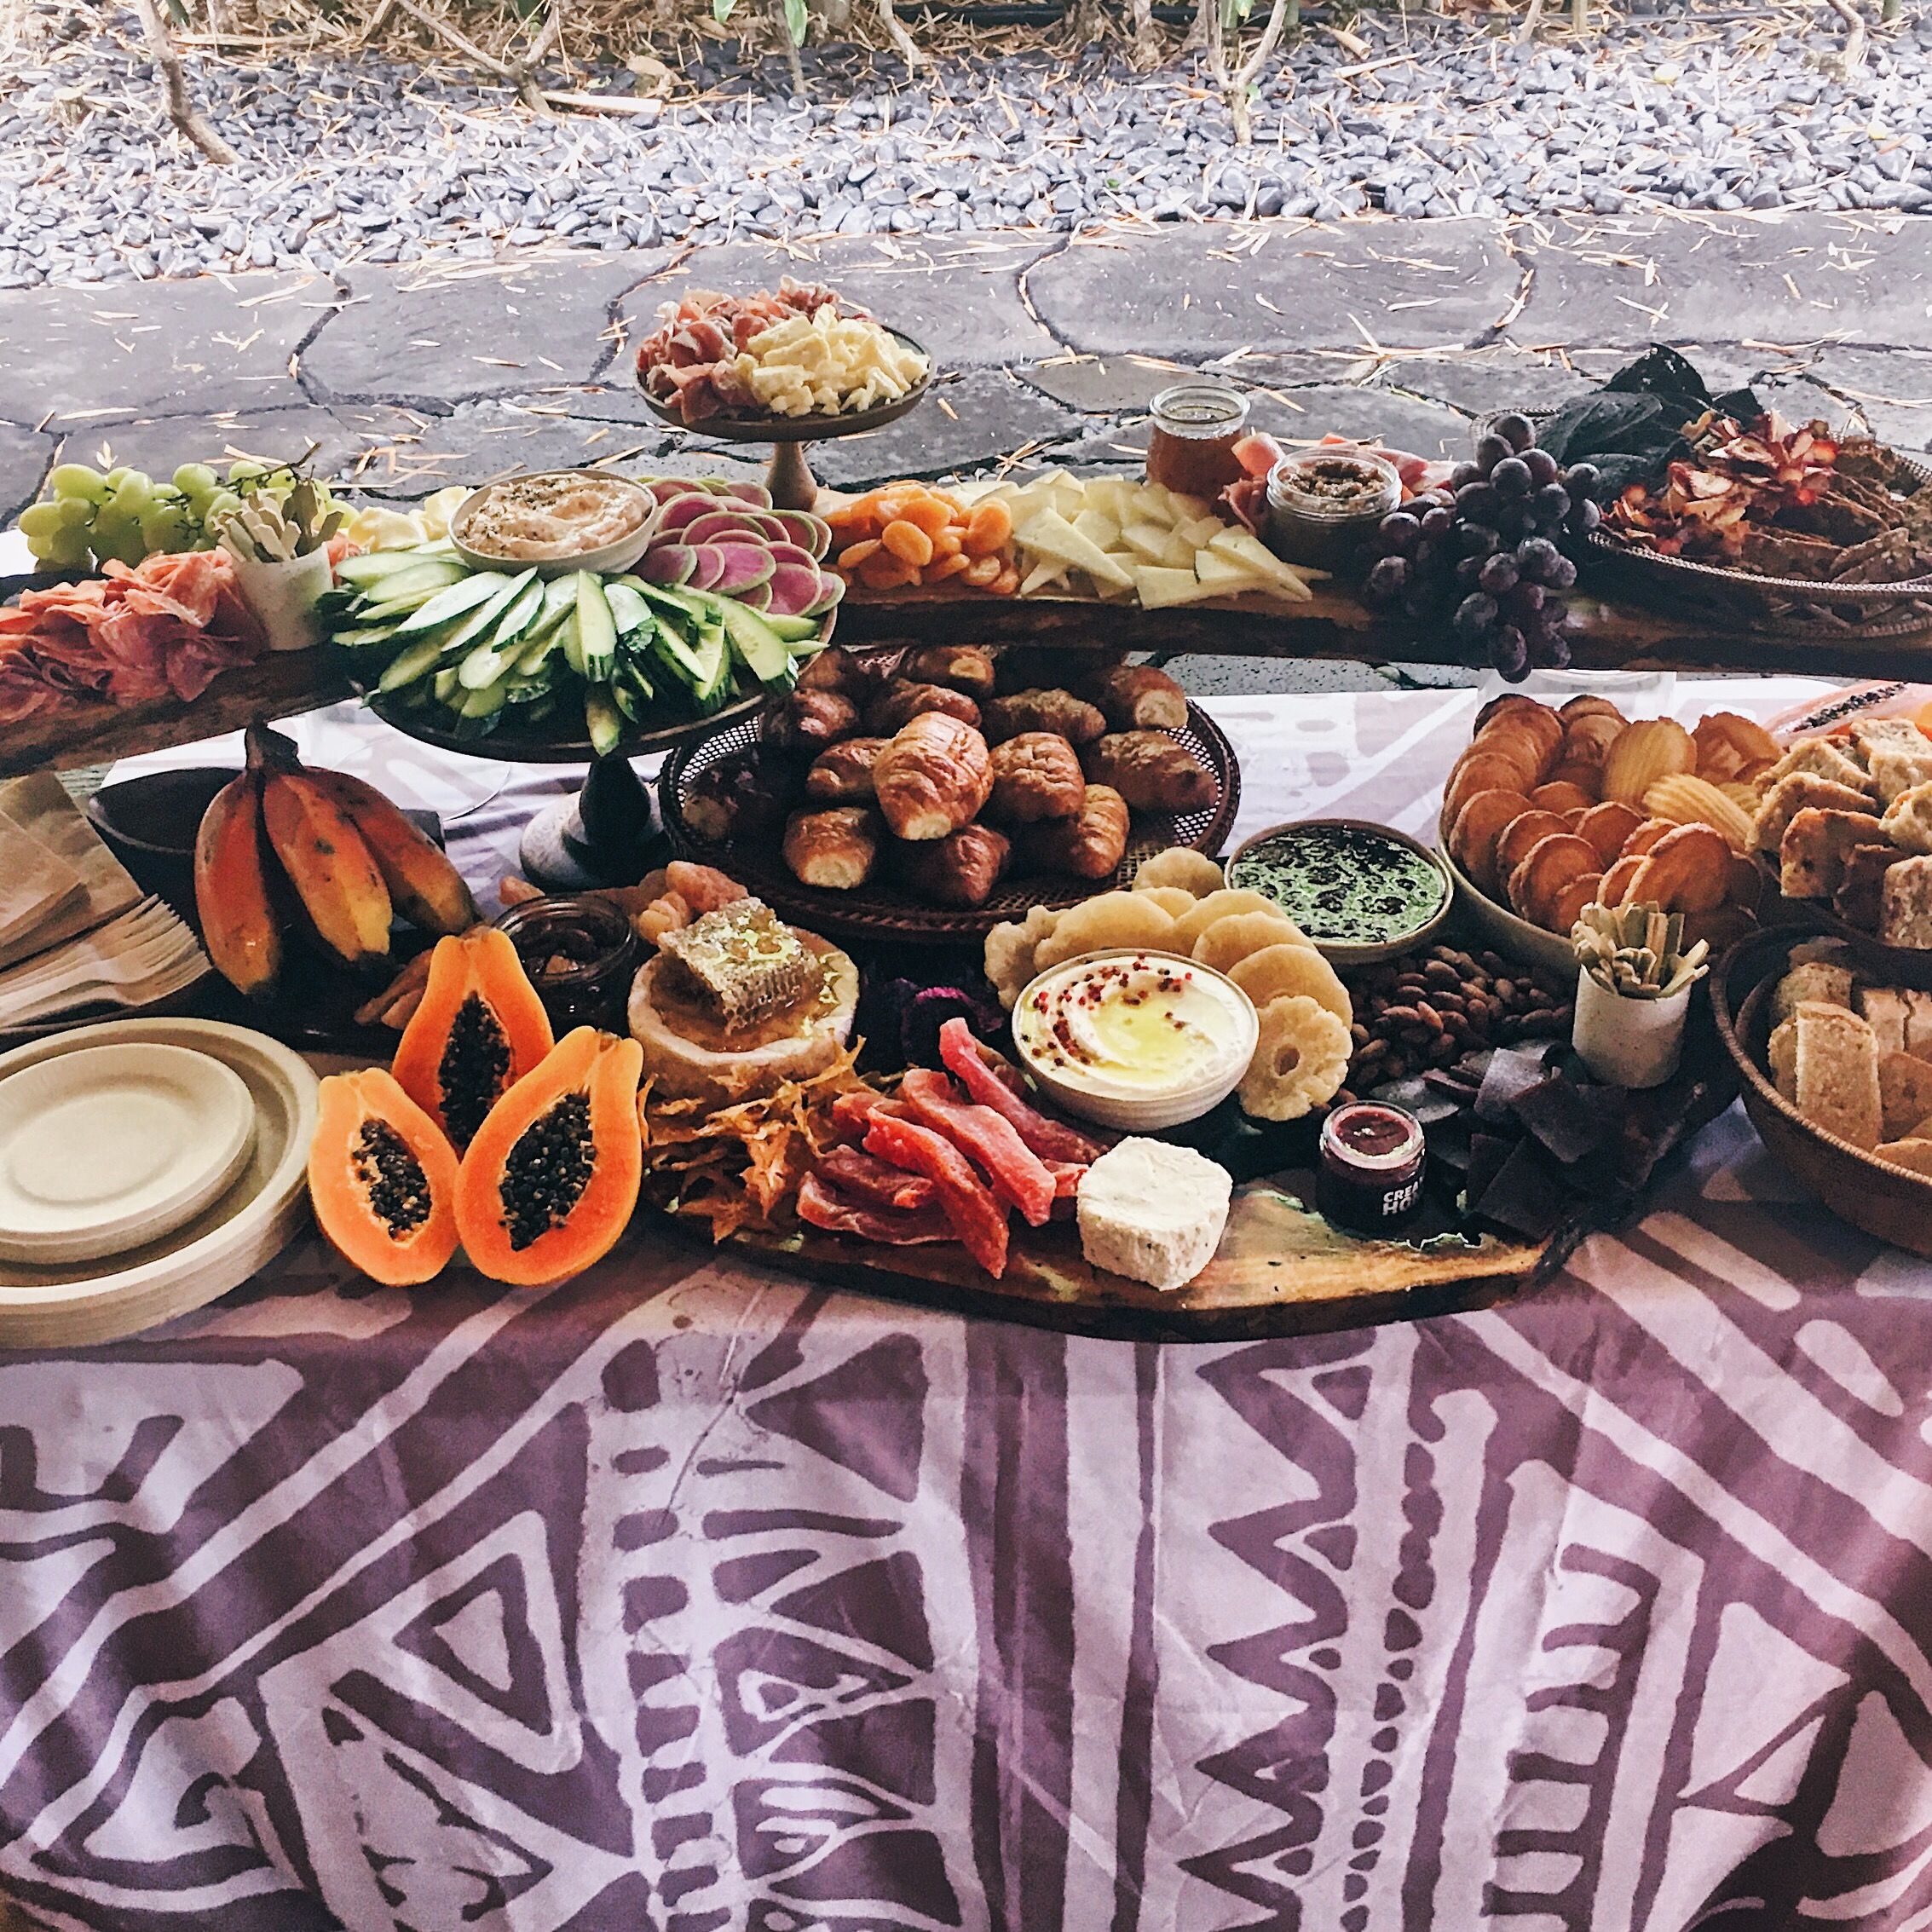 Hawaii Island Picnics and Provisions Grazing Table Bridal Shower 2019.jpg